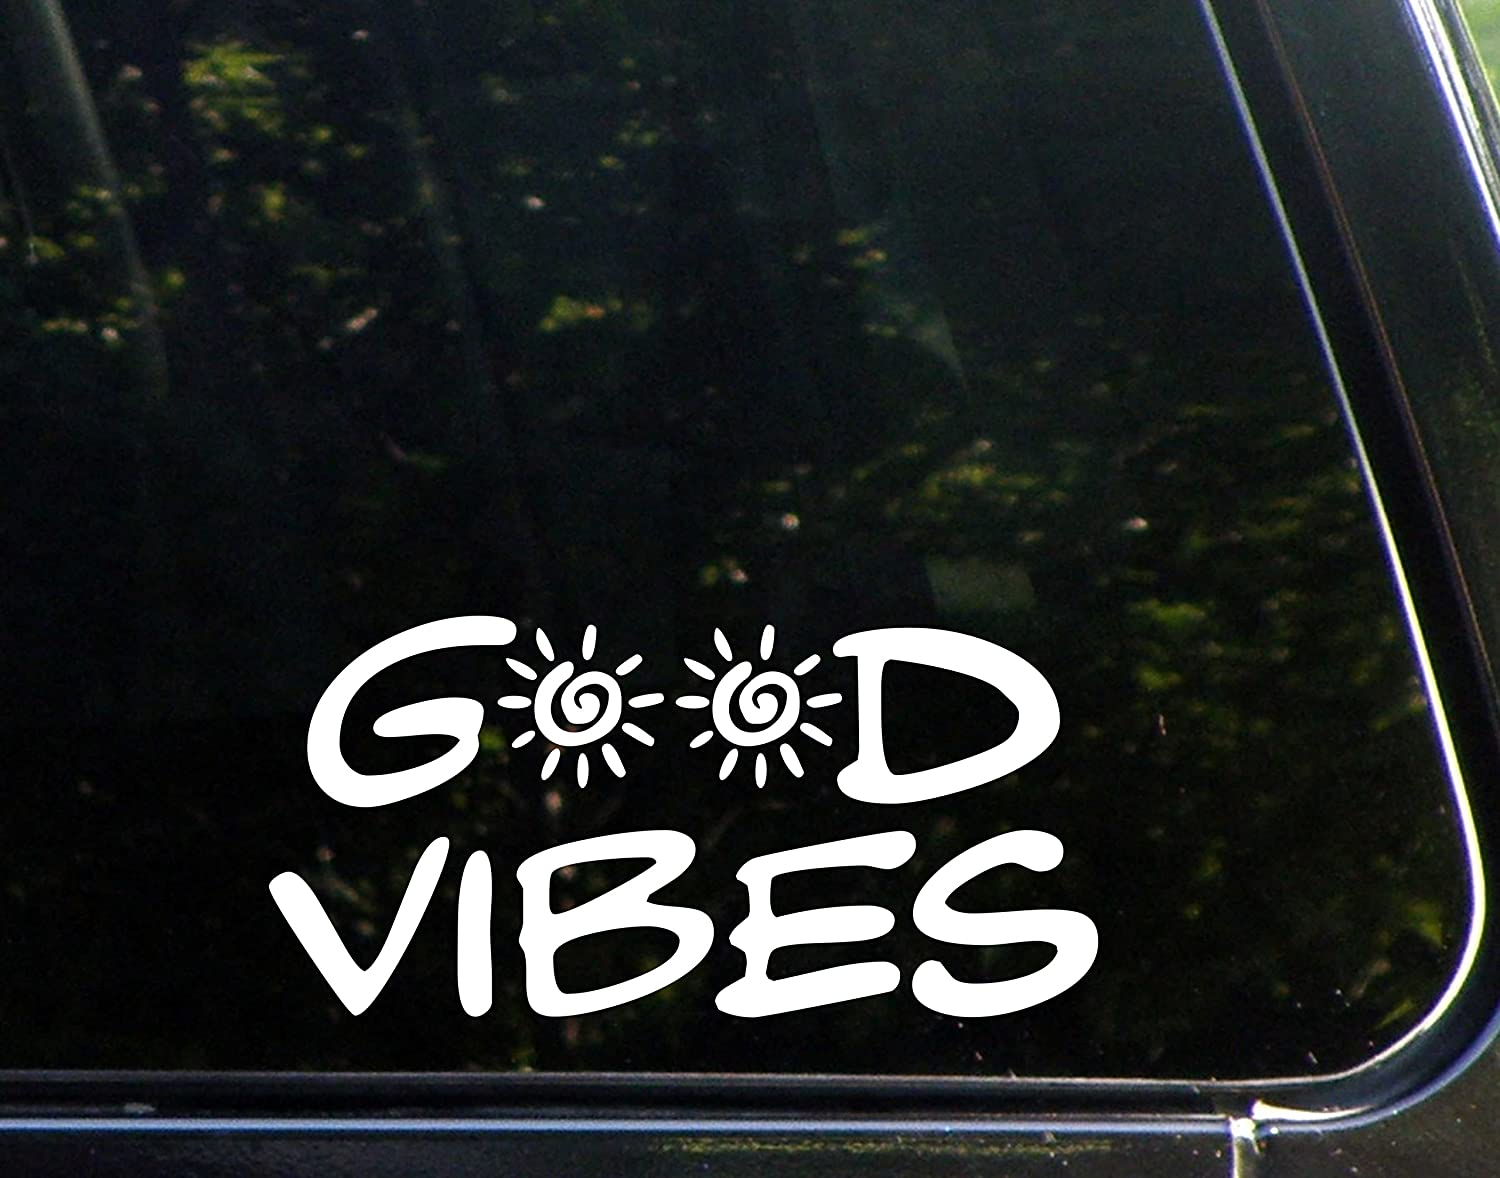 Amazoncom Good Vibes X Vinyl Die Cut Decals Bumper - Die cut window decals